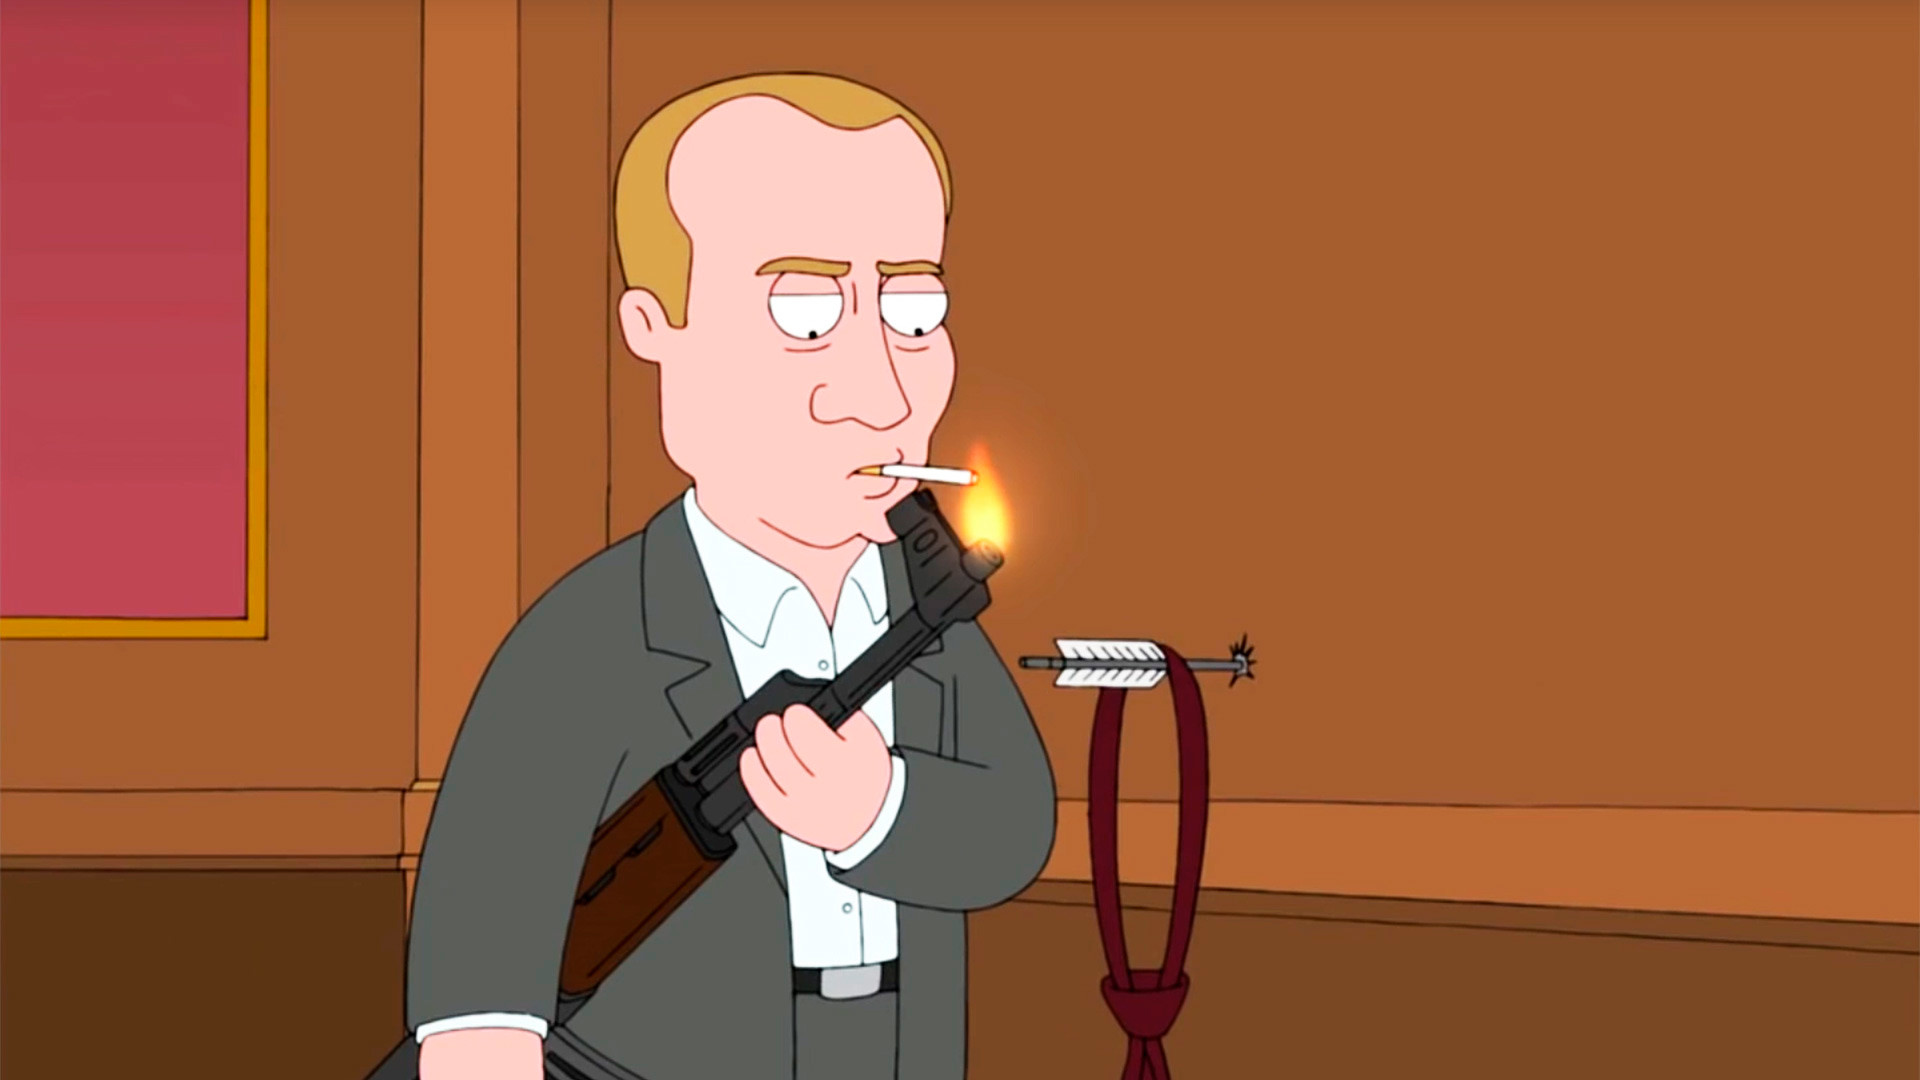 Vladimir Putin in Family Guy